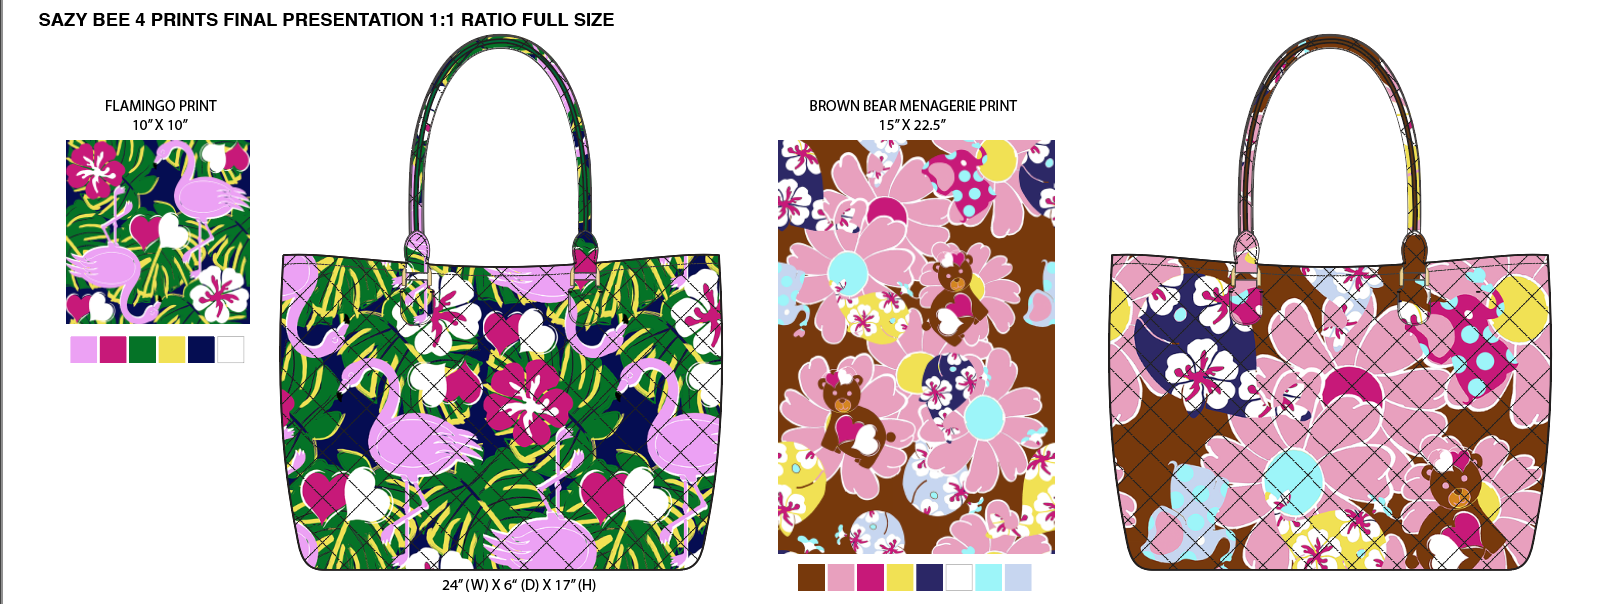 Flamingo & Animal prints on quilted cotton tote for Sazy Bee's Junior Division